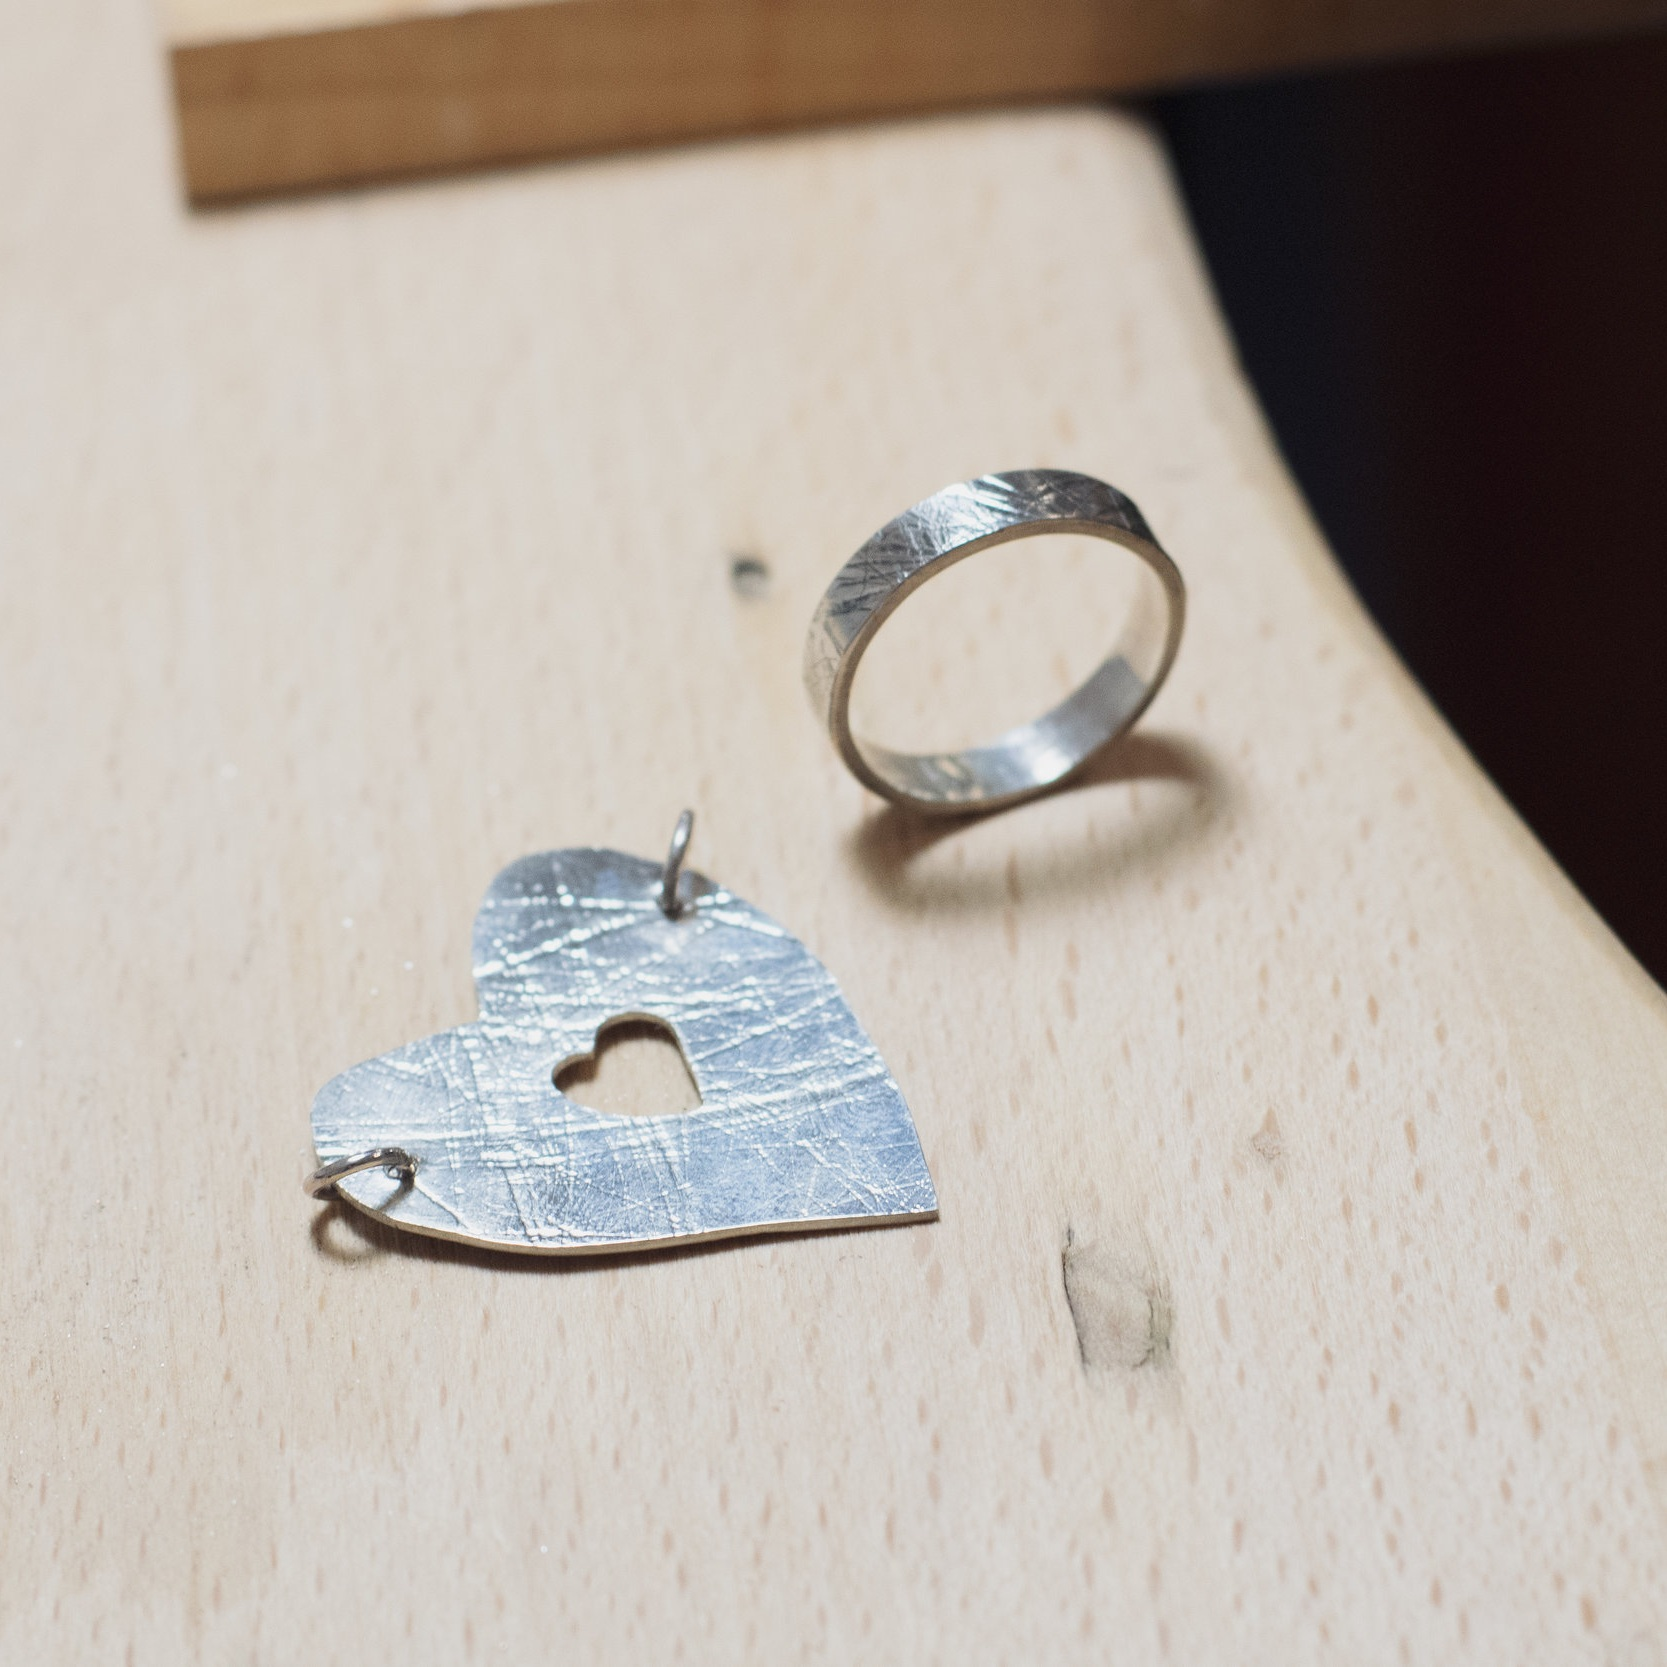 Full day jewellery making course £150 -